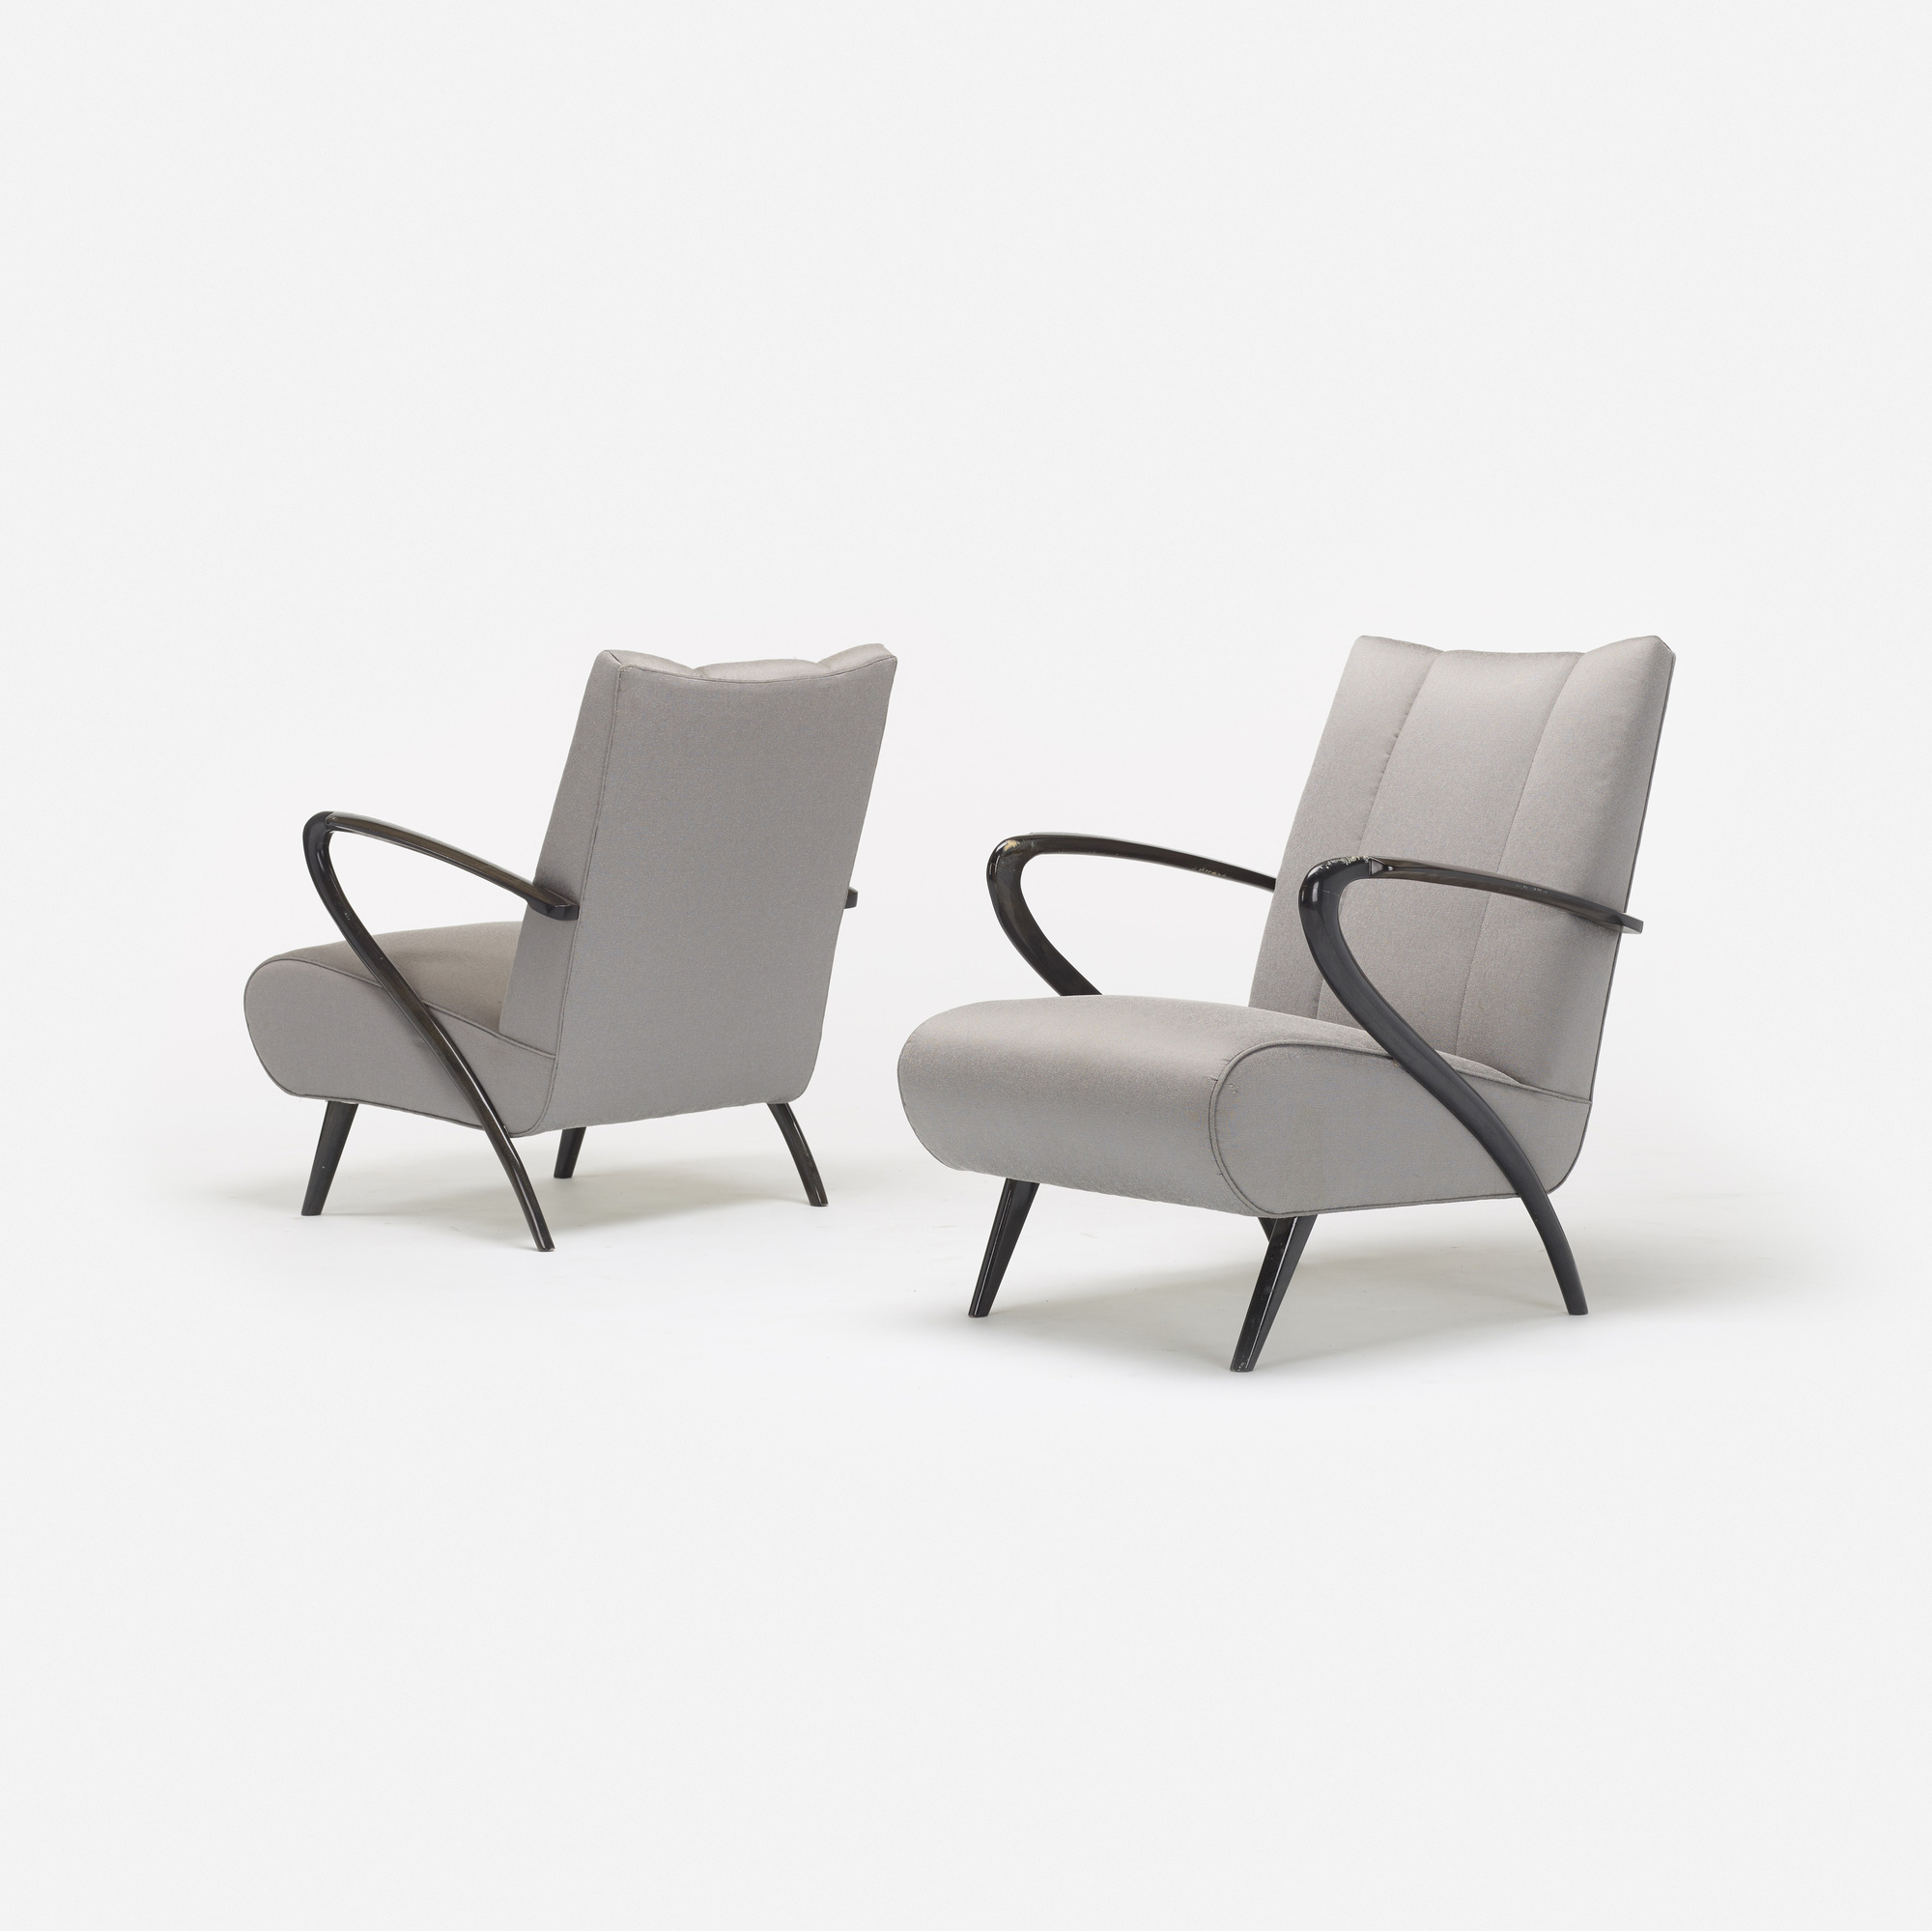 584: Modern / lounge chairs, pair (2 of 4)